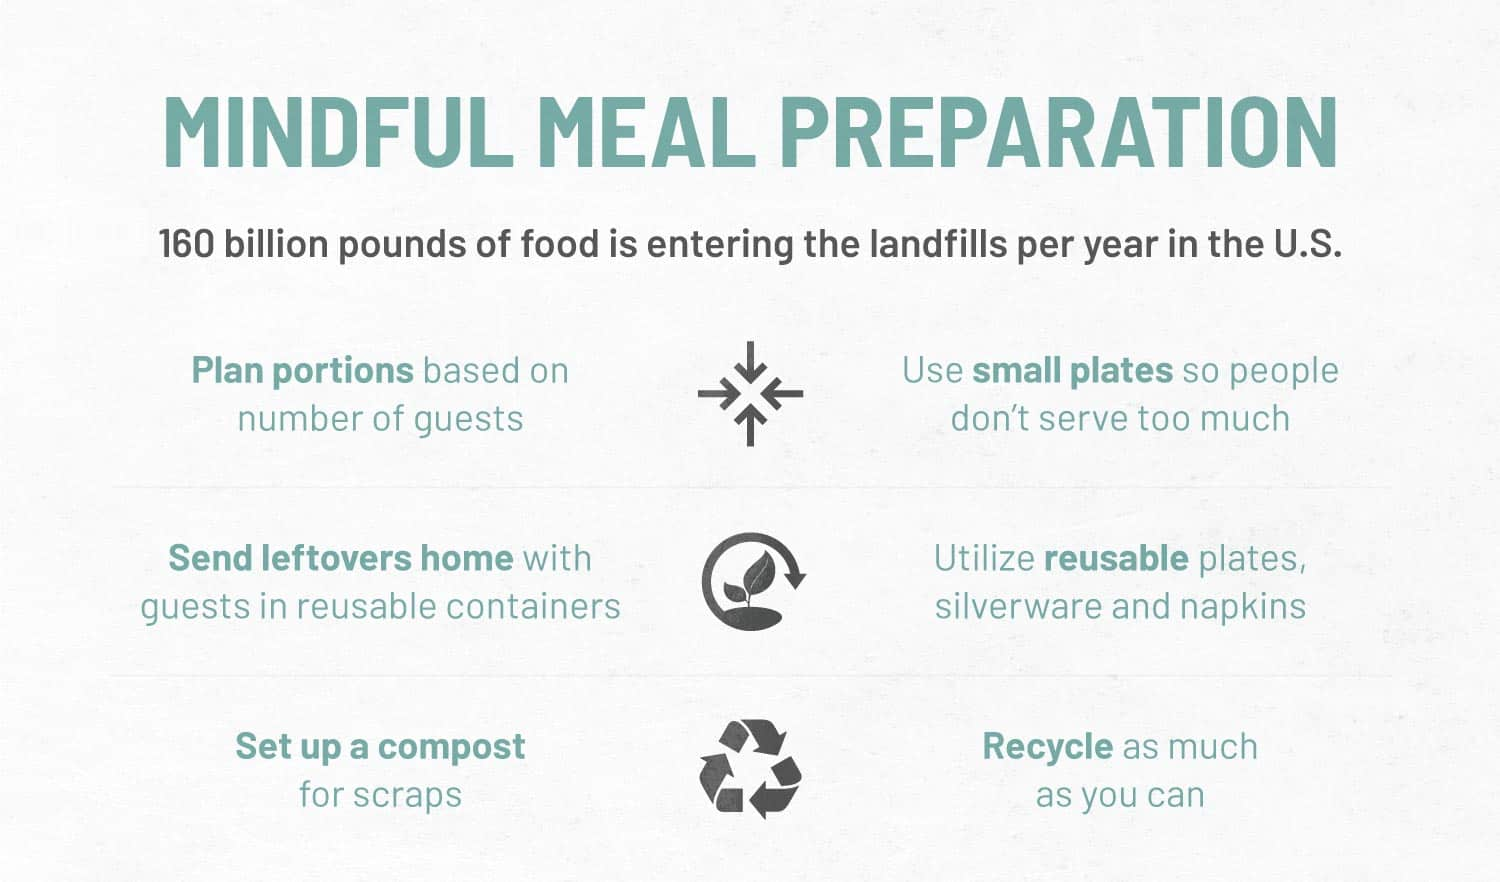 graphic that shows sustainable meal prep tips